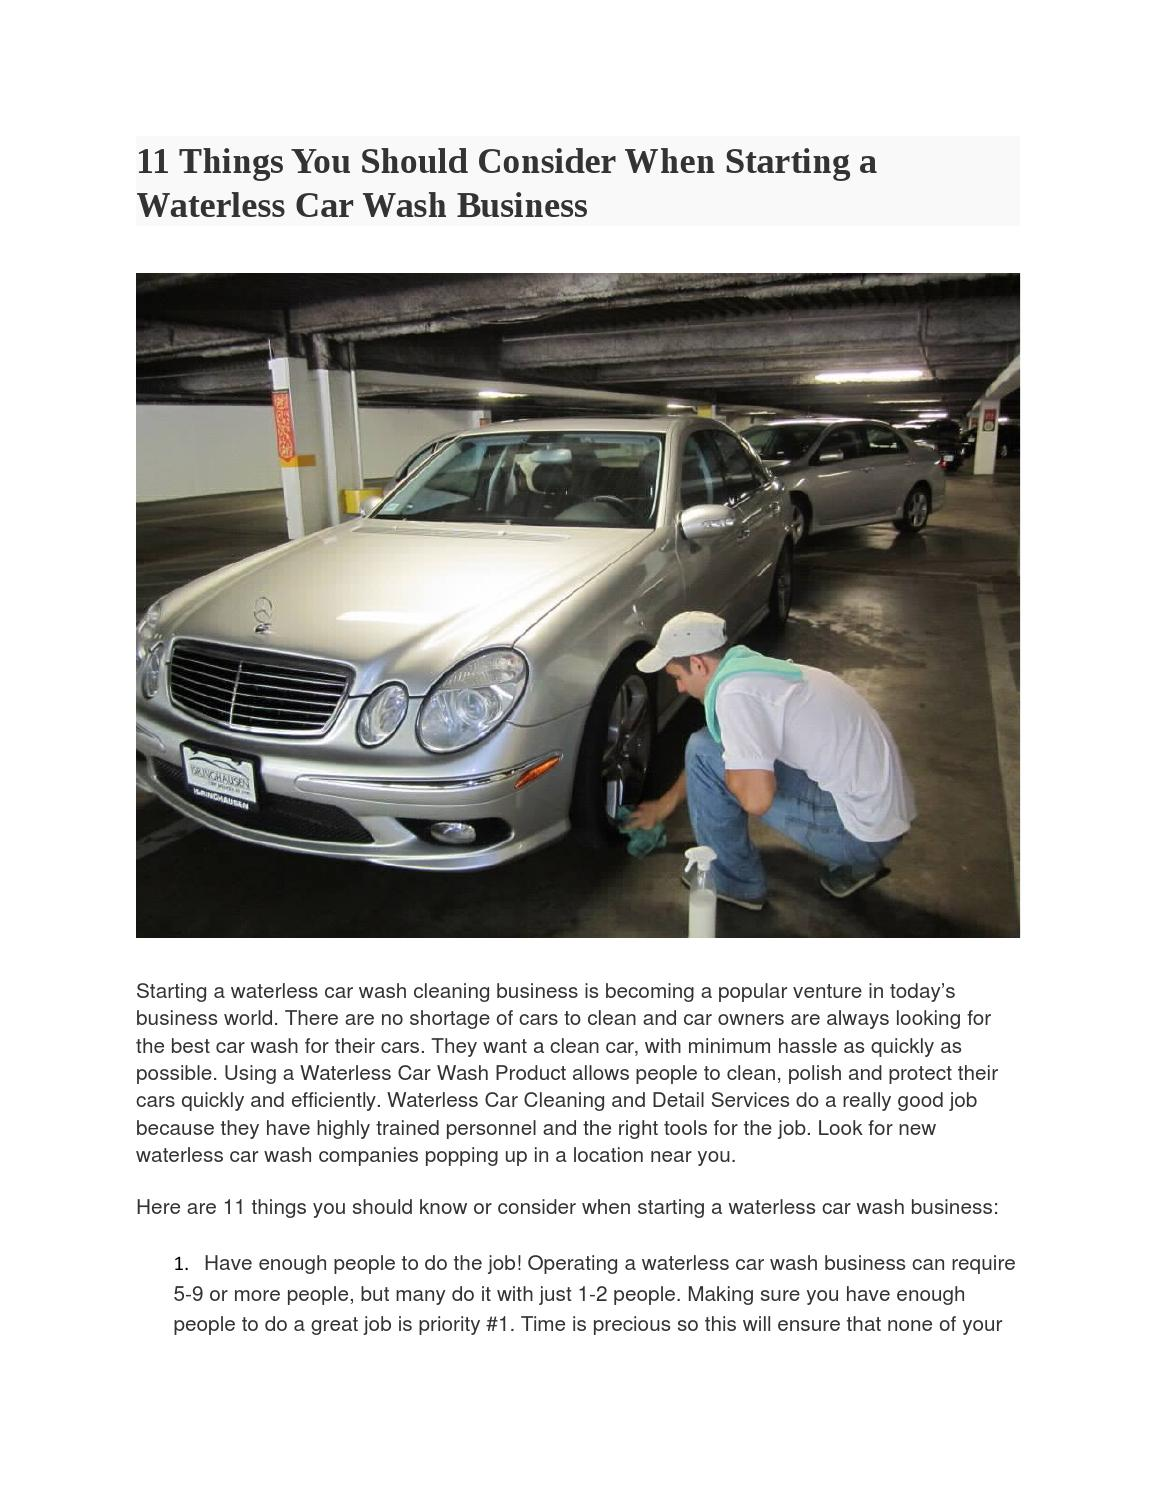 How To Write A Waterless Car Wash Business Plan